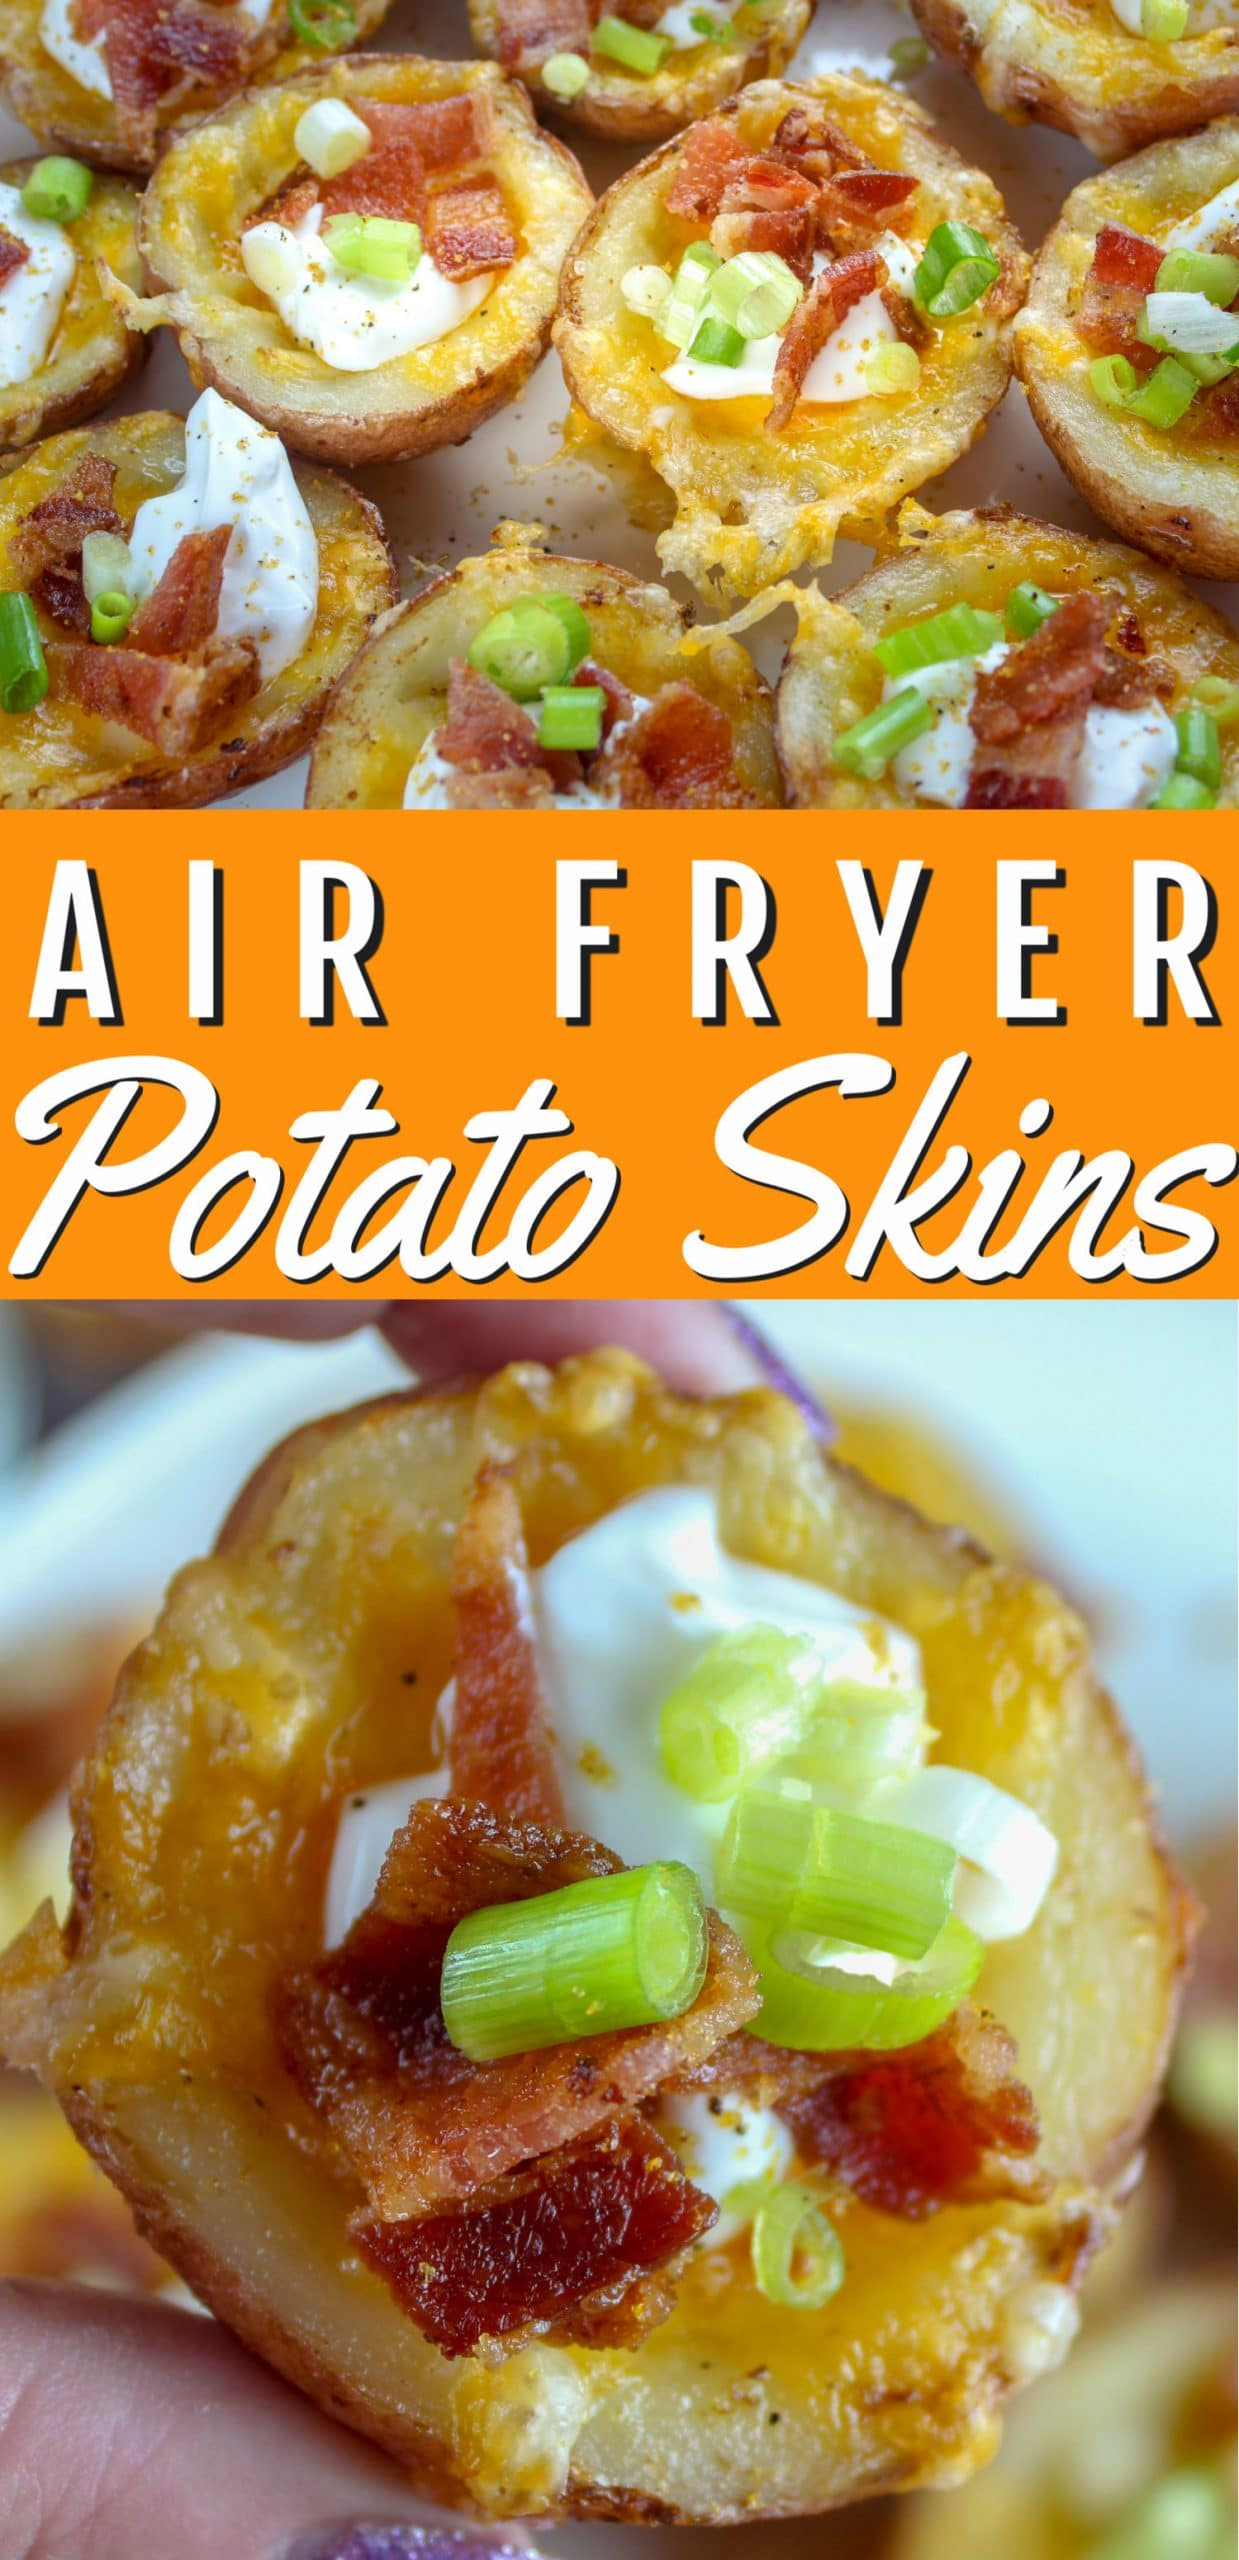 I'm a SUCKER for potato skins - I mean - what's not to love? I've never made them at home - until now! These air fryer potato skins are so much quicker and man on man - I can tell you - I ate the whole plateful. Oye! Cheese, bacon, sour cream - I'm hungry again already!  via @foodhussy